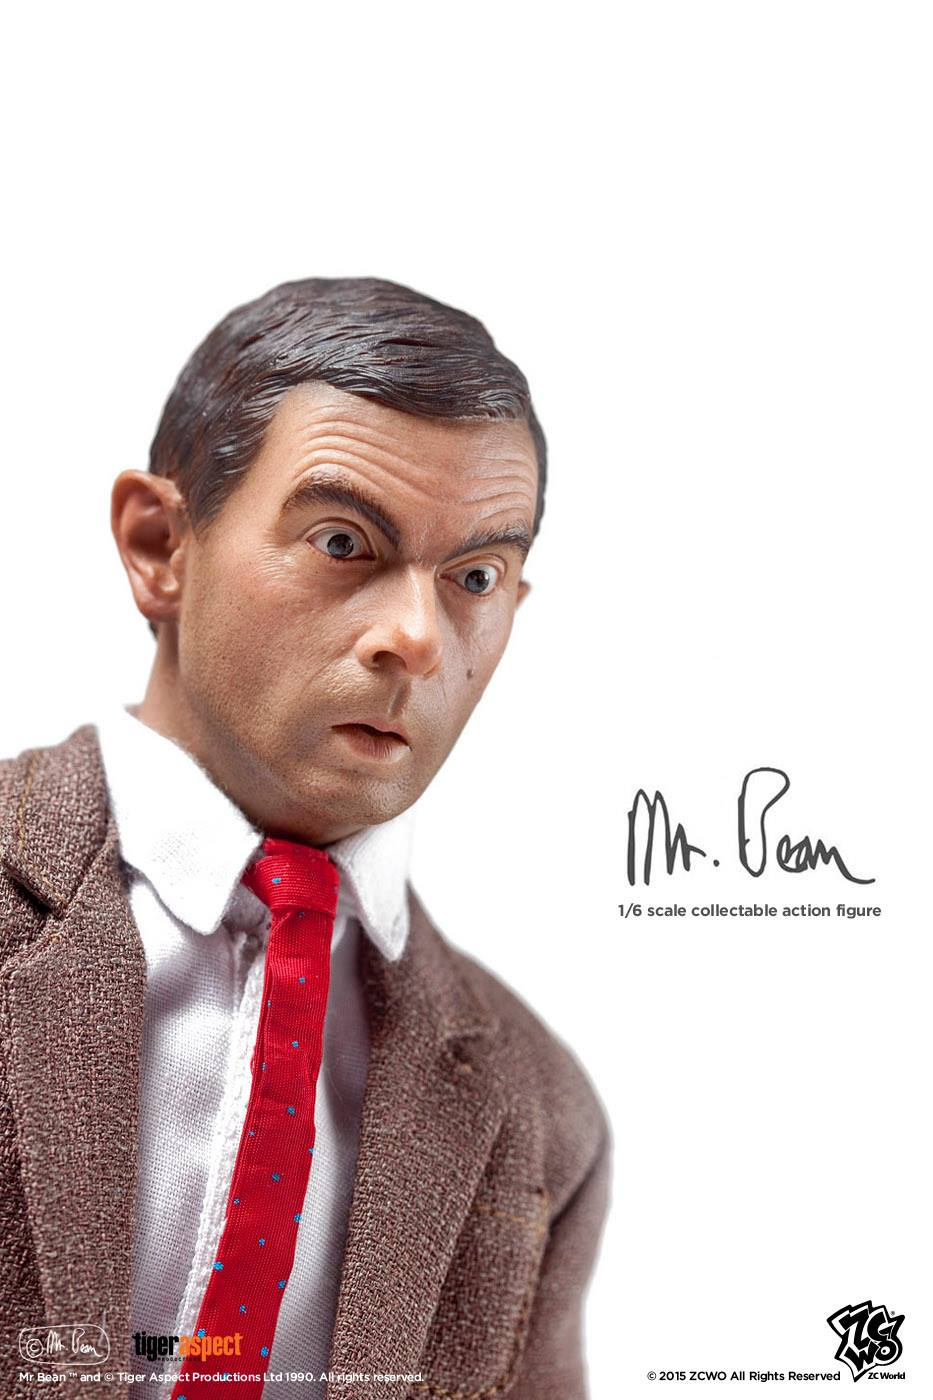 [ZCWO] Mr. Bean - 1/6 scale 150248ei9sidp0lq9itpdi